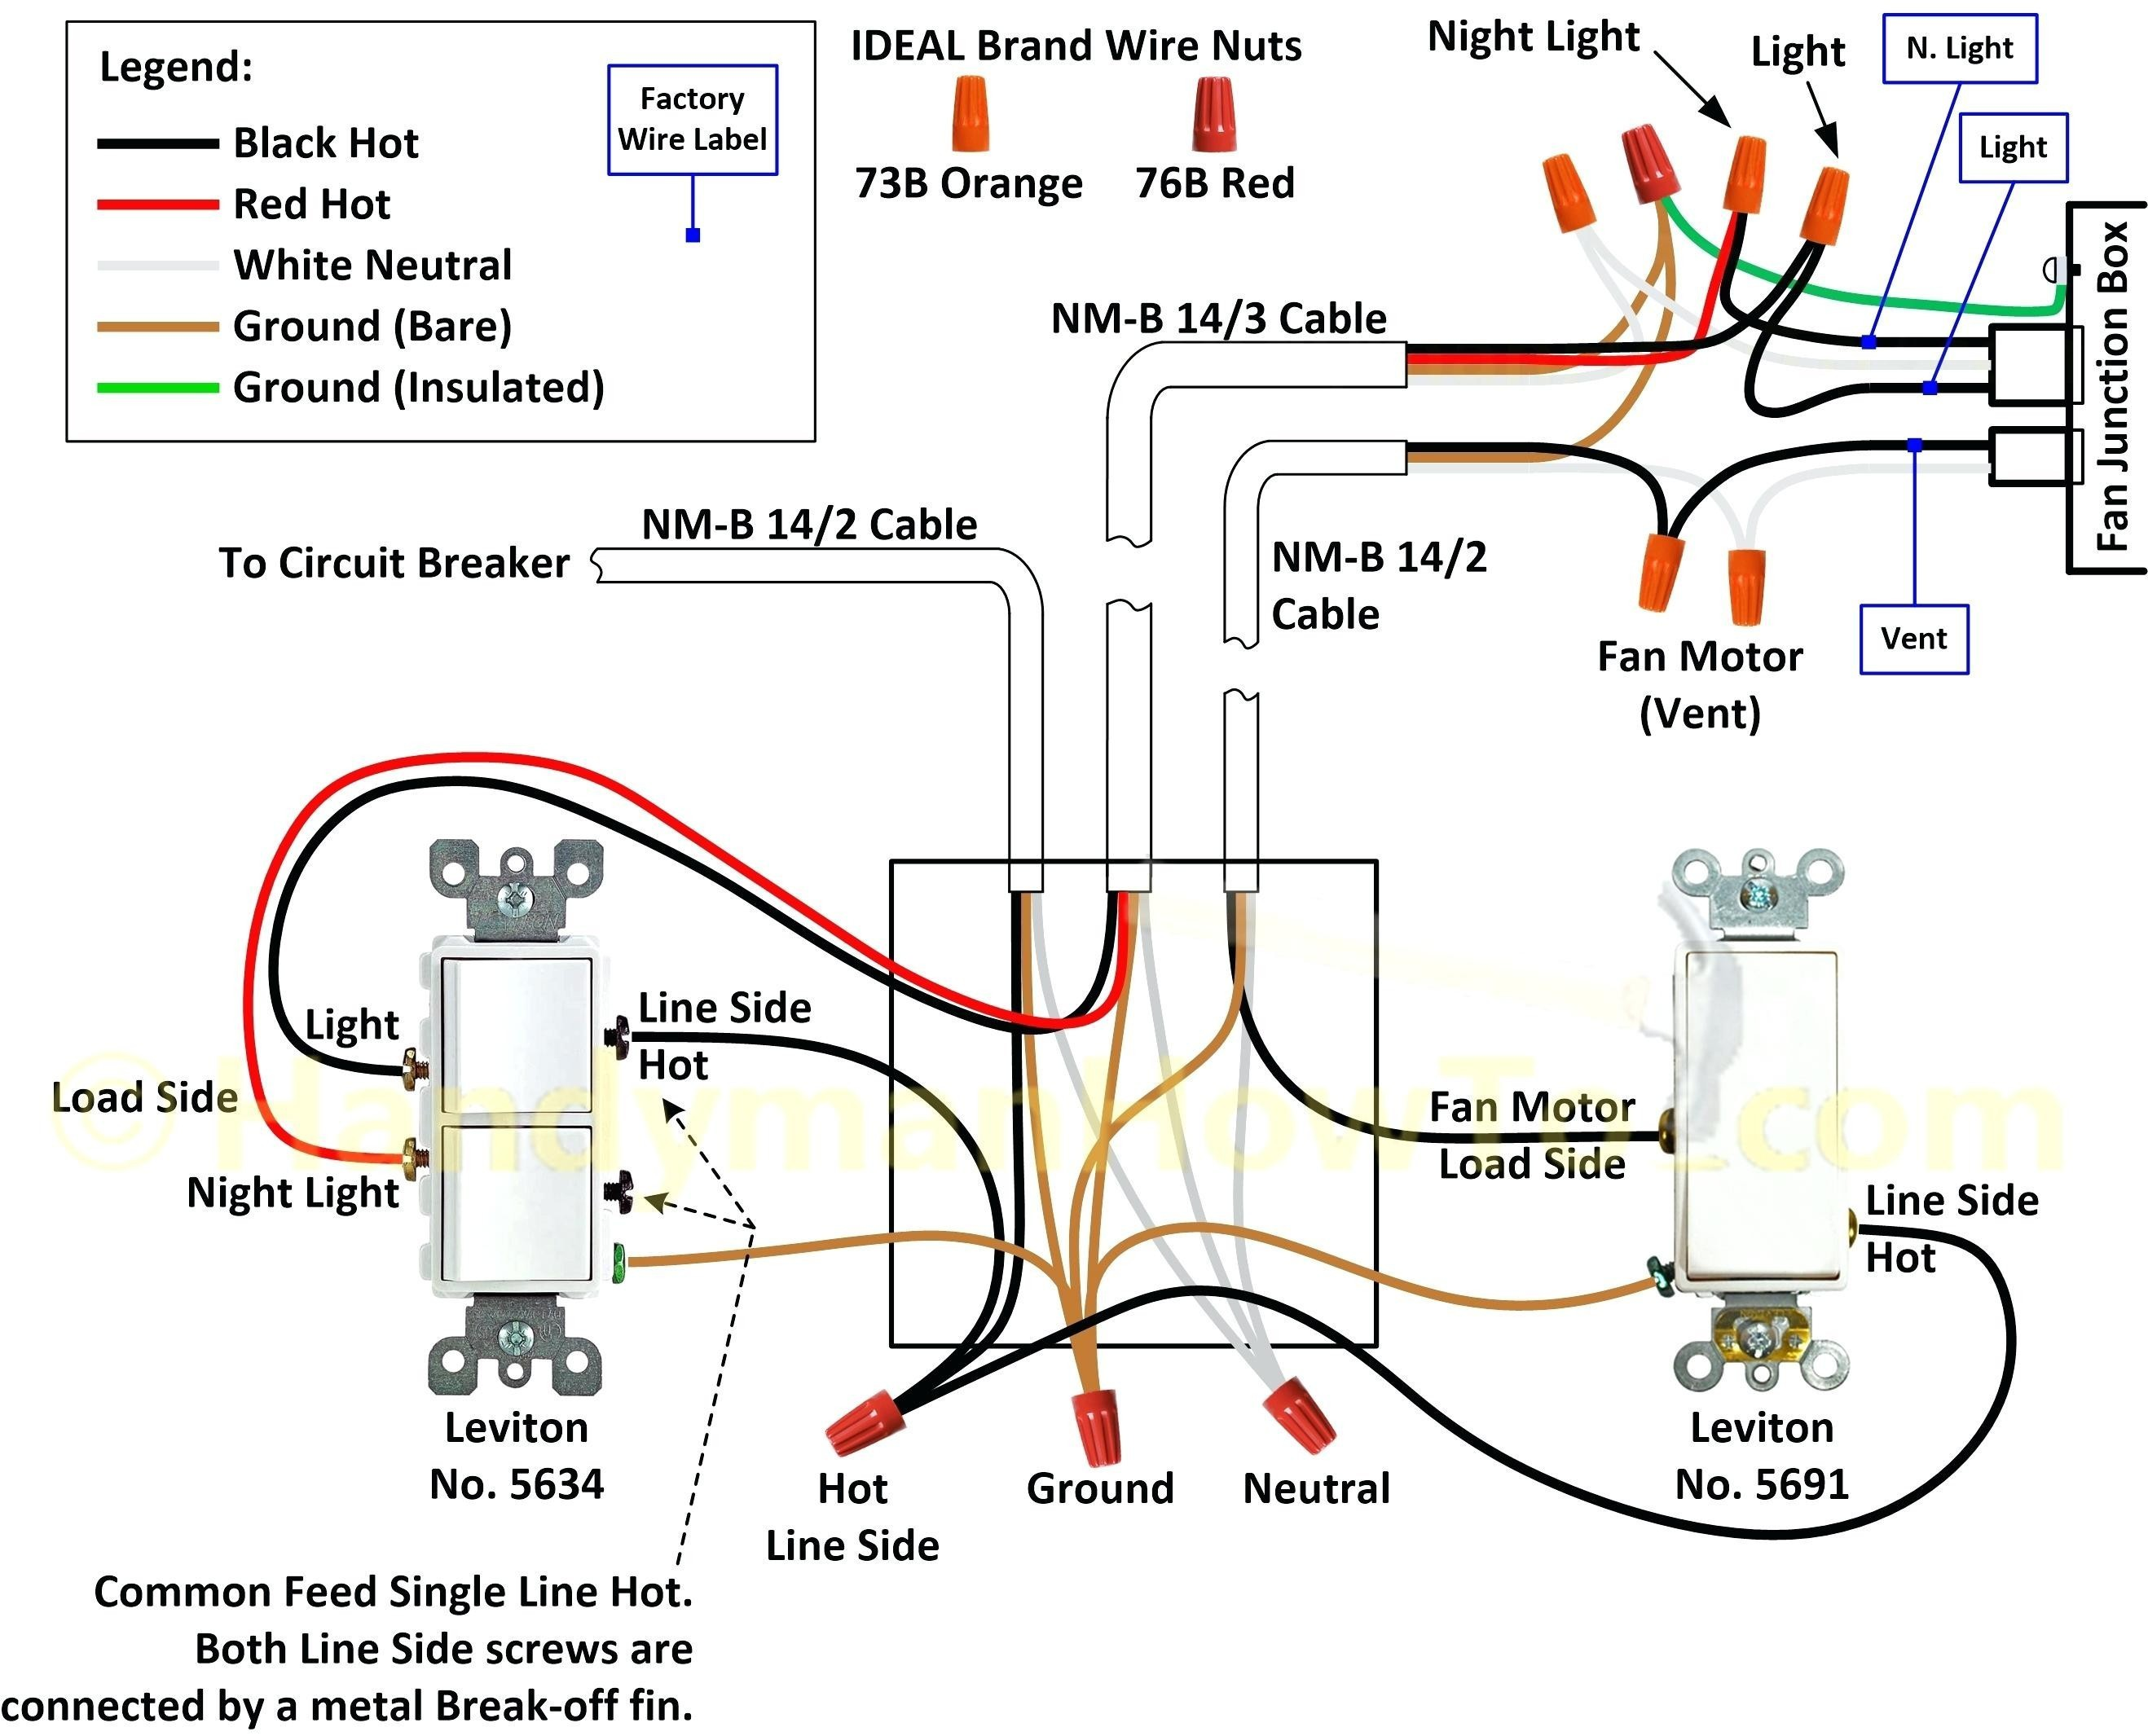 Mk 50a Pull Cord Switch With Neon Wiring Diagram - Wiring ...